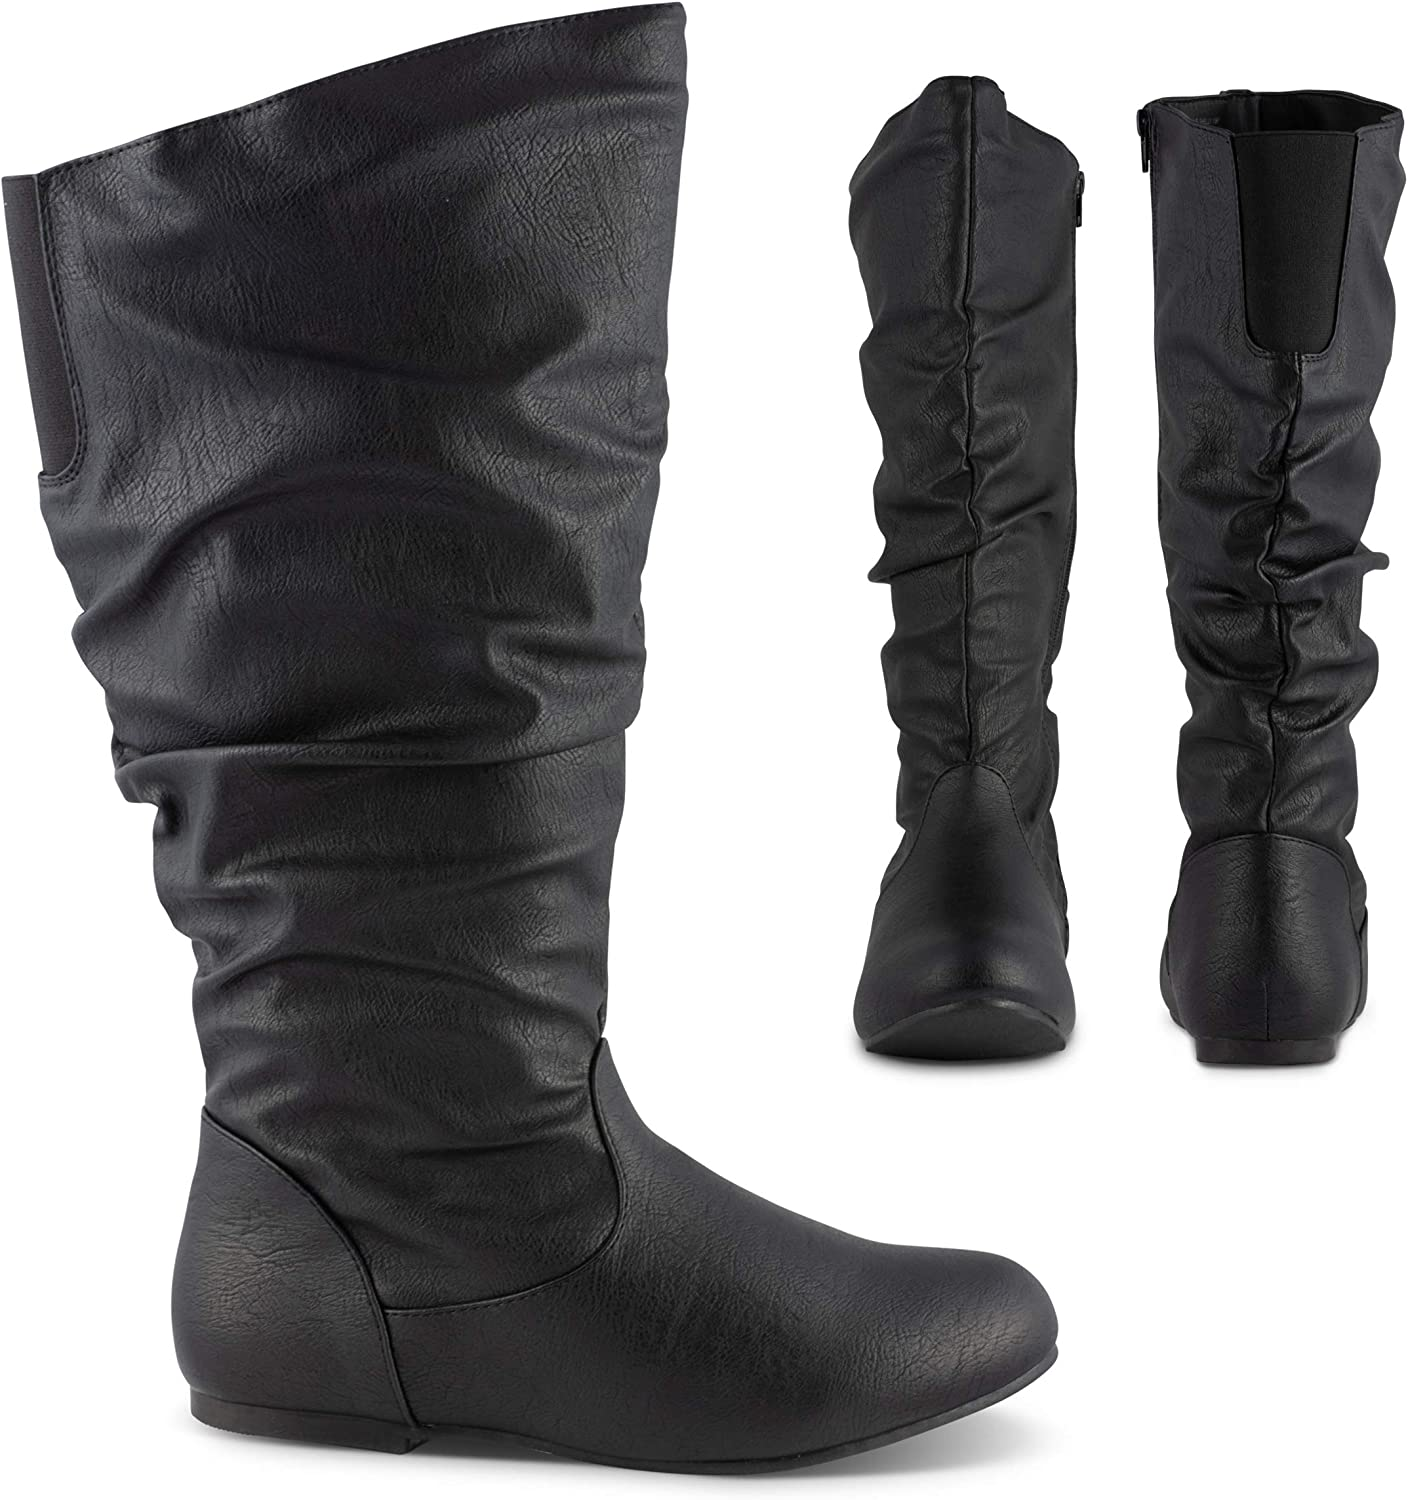 Twisted Shelly Women's Flat Knee High Slouch Riding Boots,